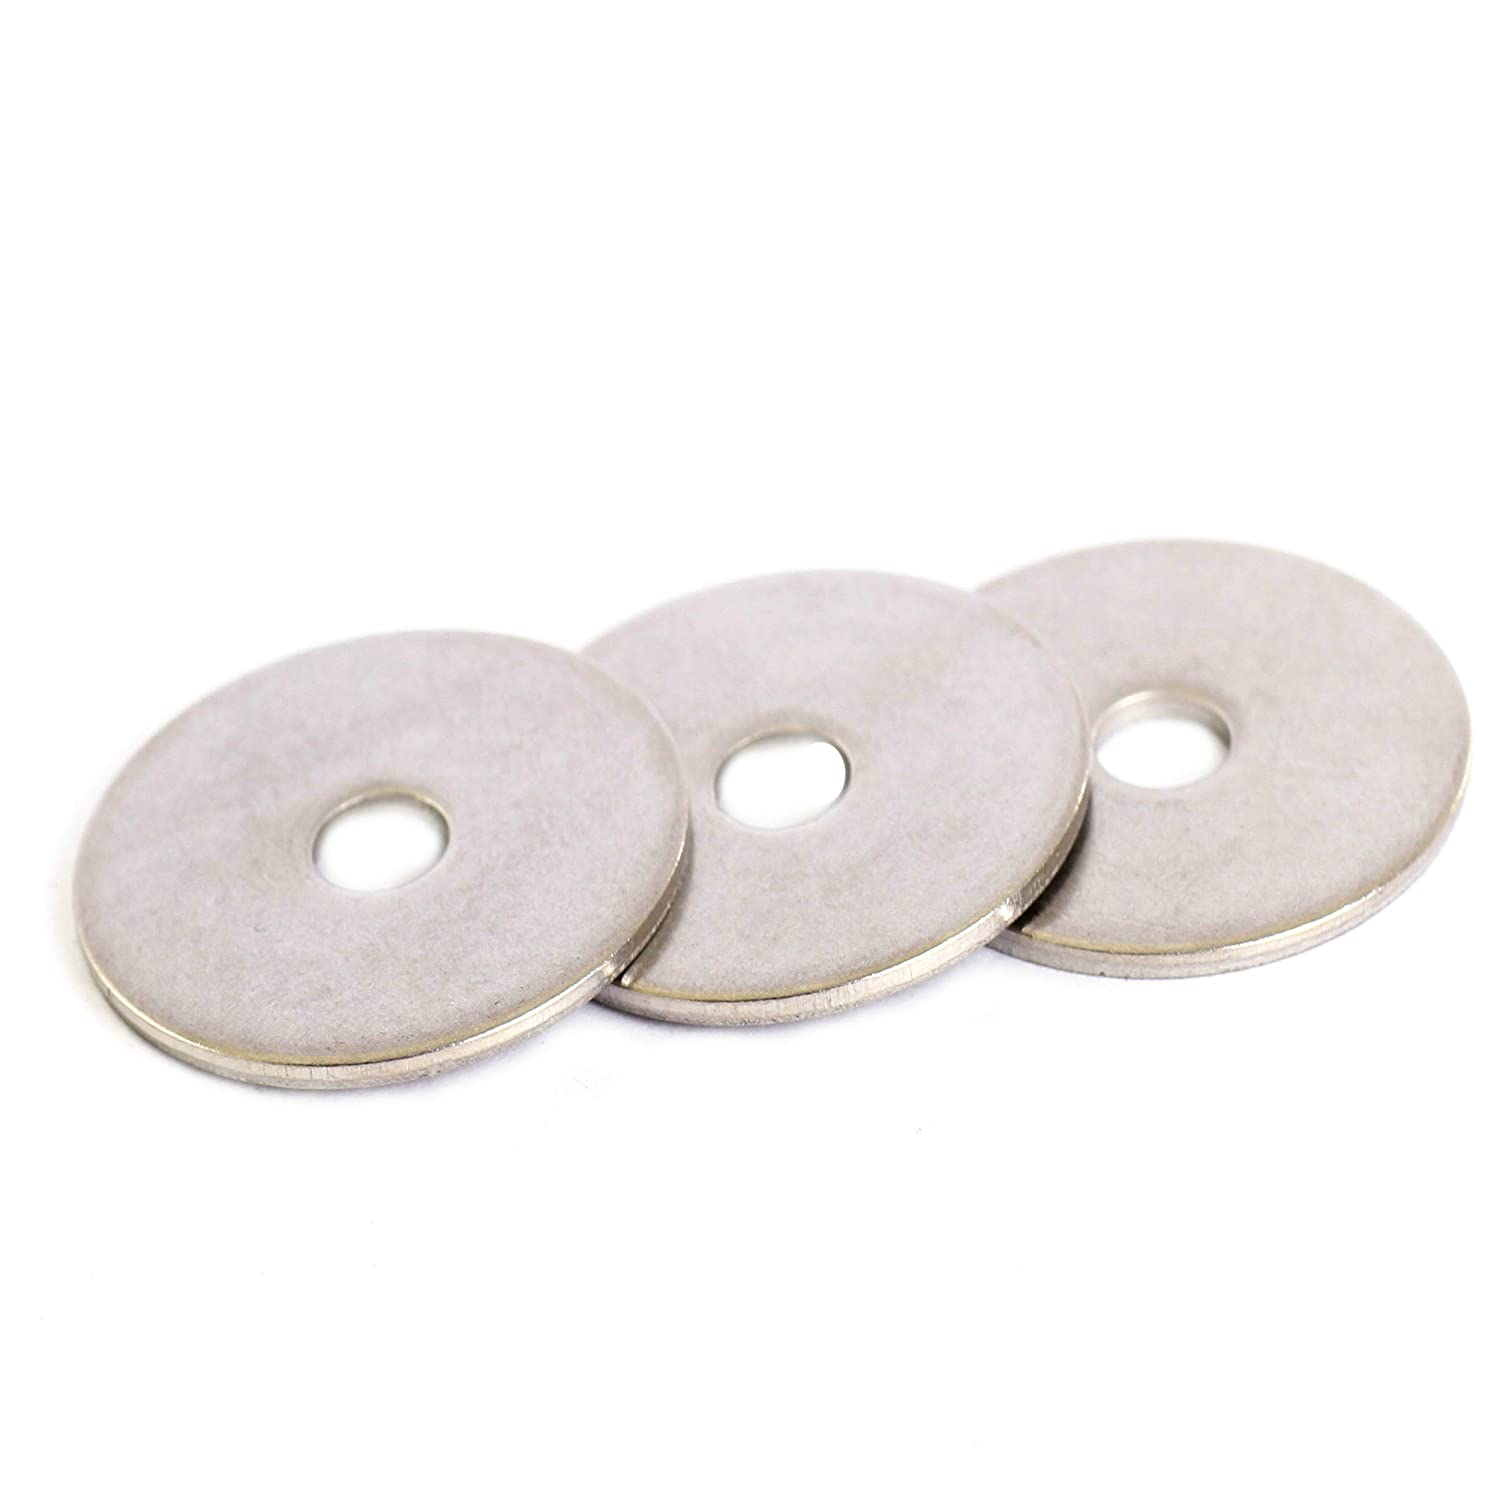 Bolt Base A2 Stainless Steel Penny Repair Washers Mudguard Washers M6 X 18 X 1.5mm Thick - 25